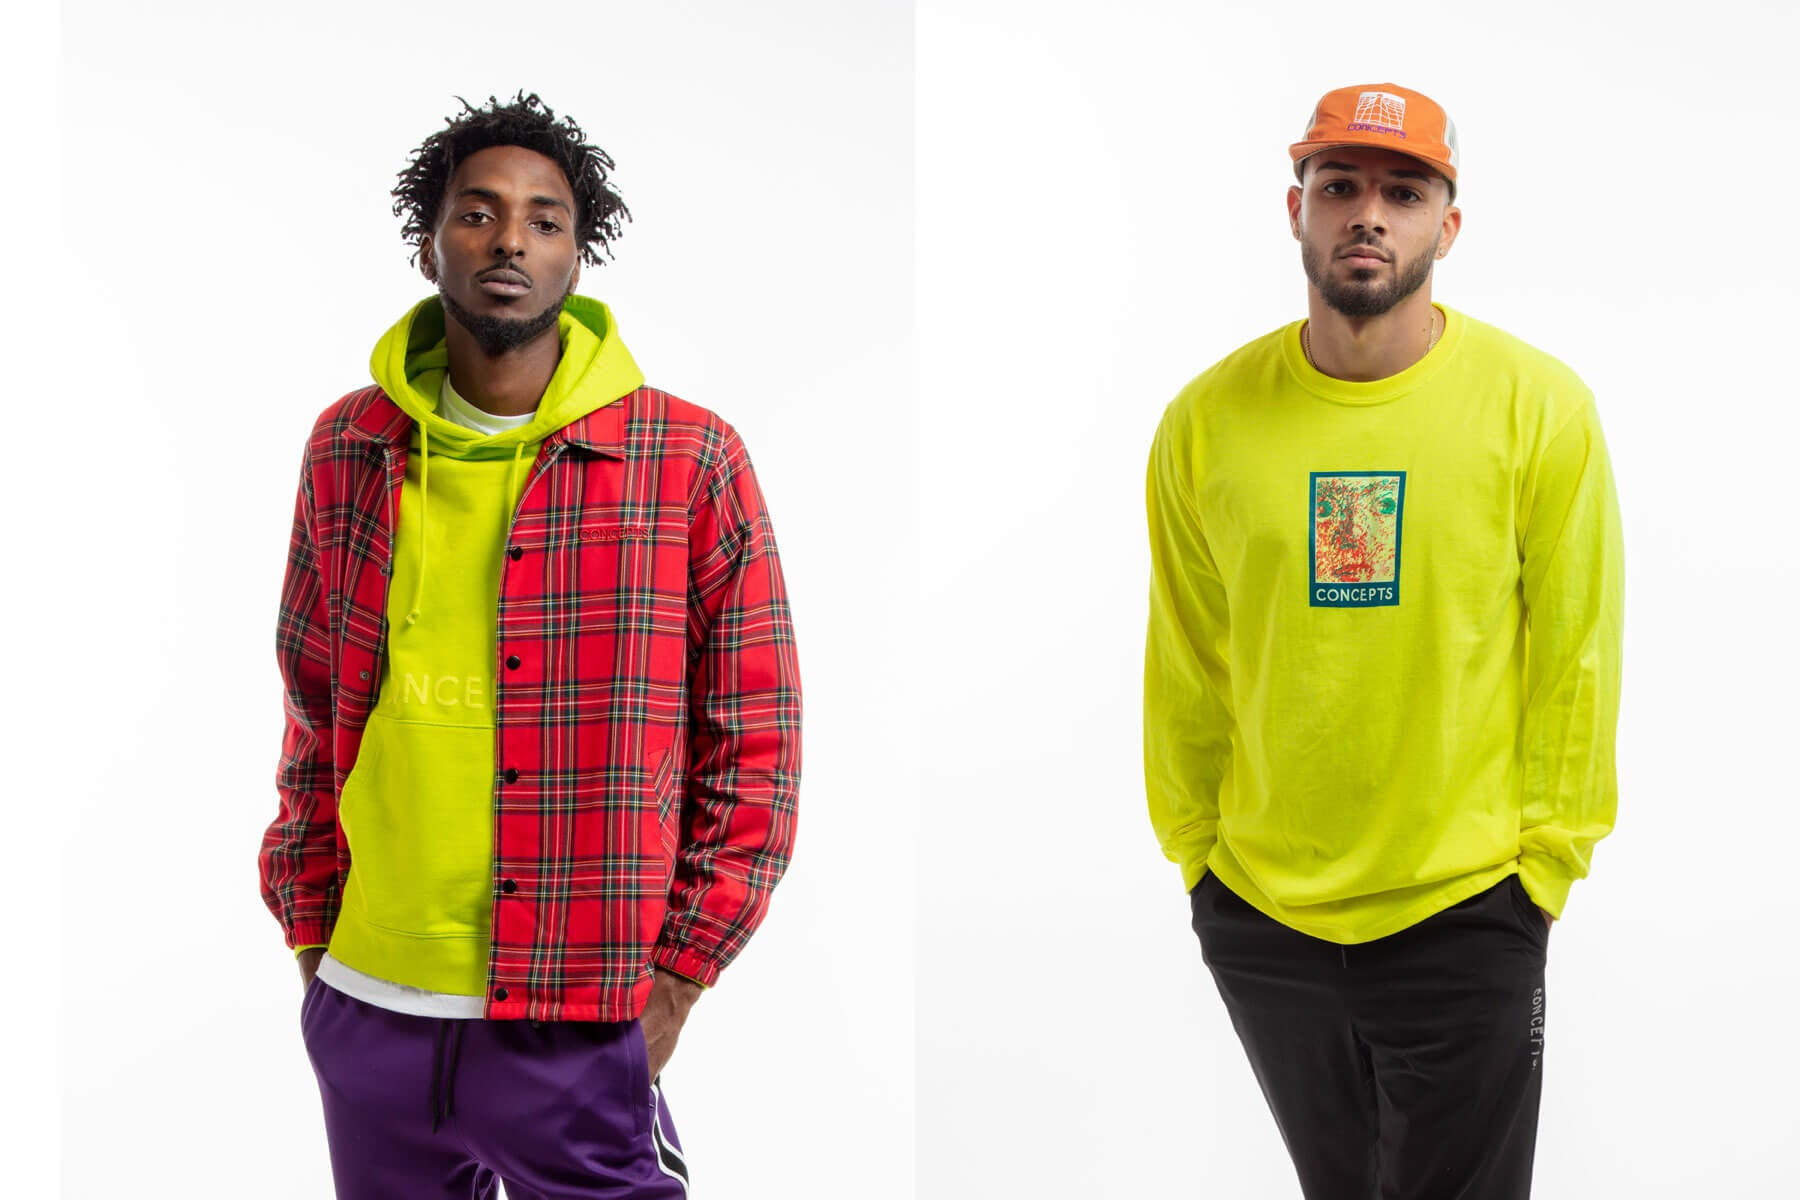 CONCEPTS FALL/WINTER 2019 COLLECTION - DROP 4